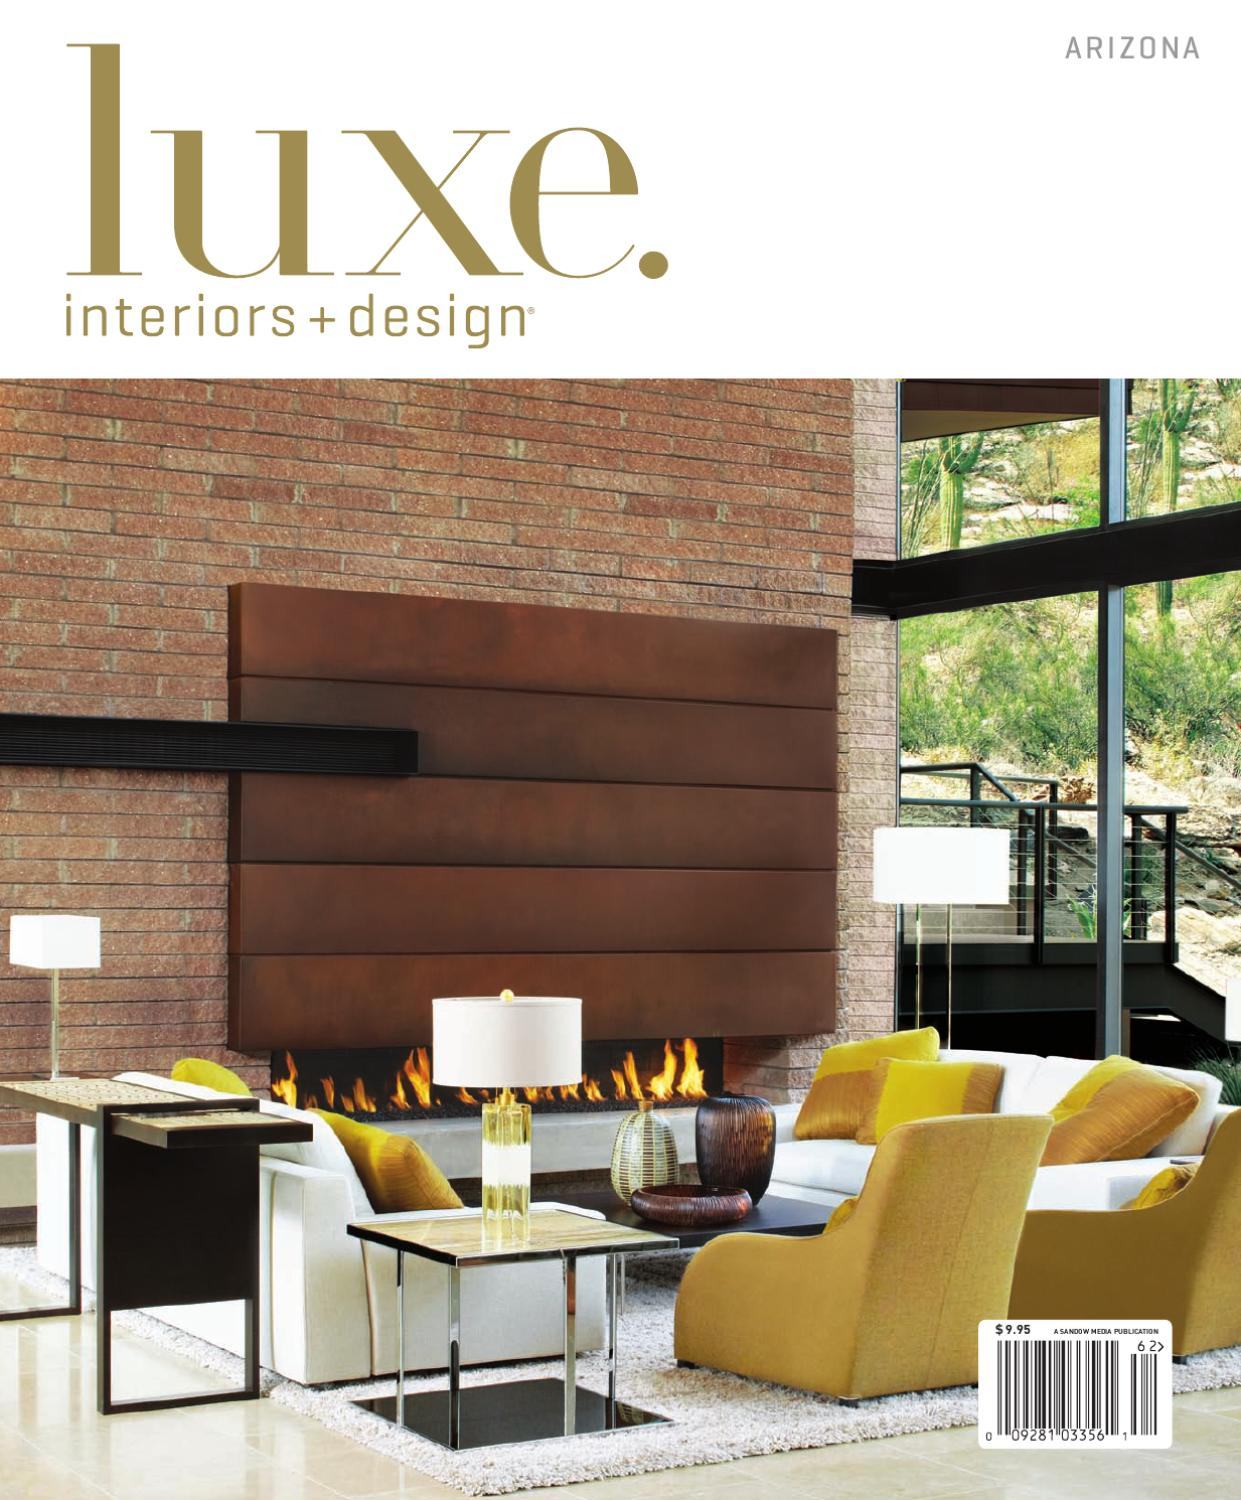 LUXE Interior Design Arizona By Sandow Media